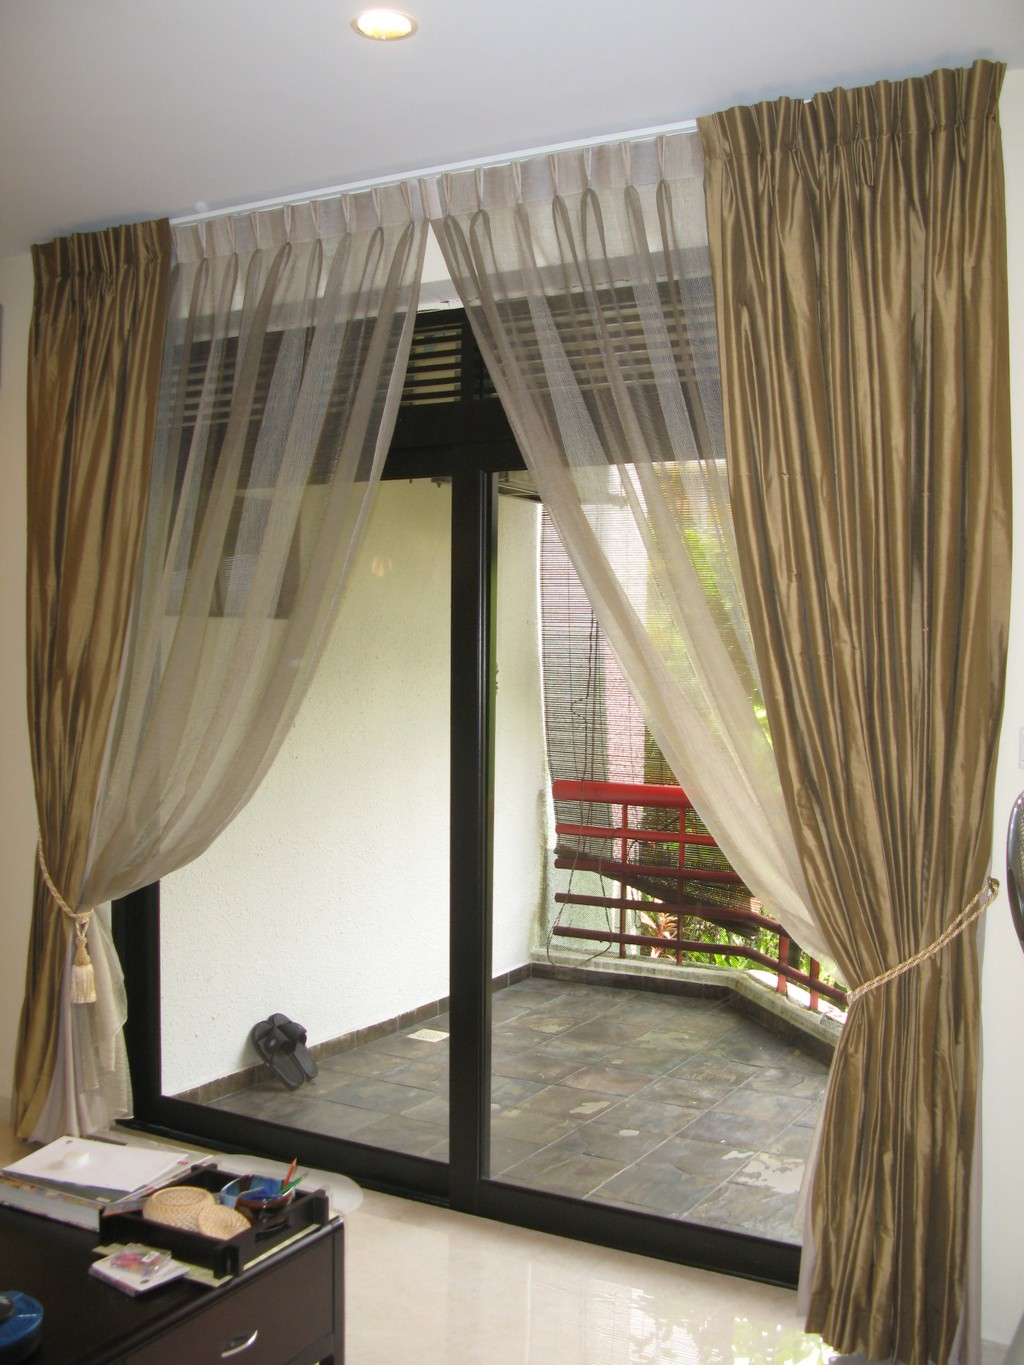 grey window curtains and scarves, bathroom window curtains, decorative curtain rods, bamboo curtains